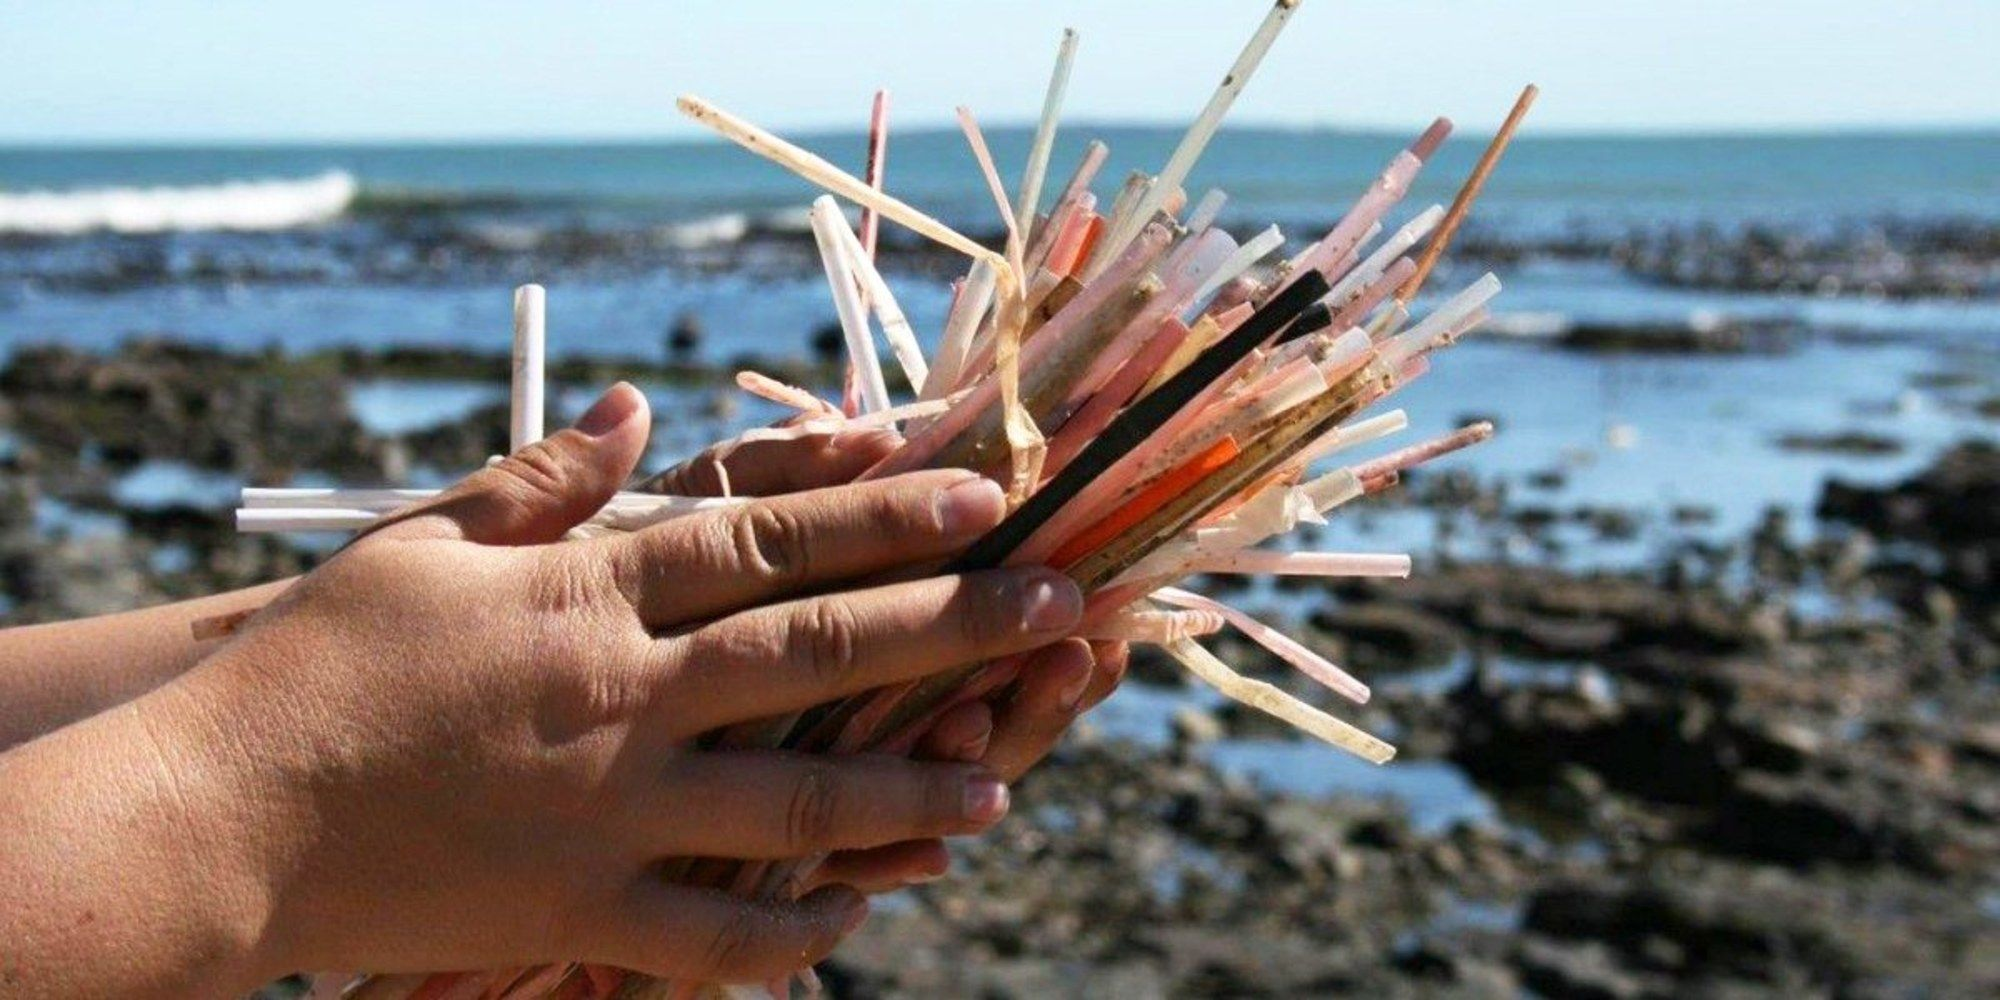 In the USA roughly 500 million plastic straws are used every day